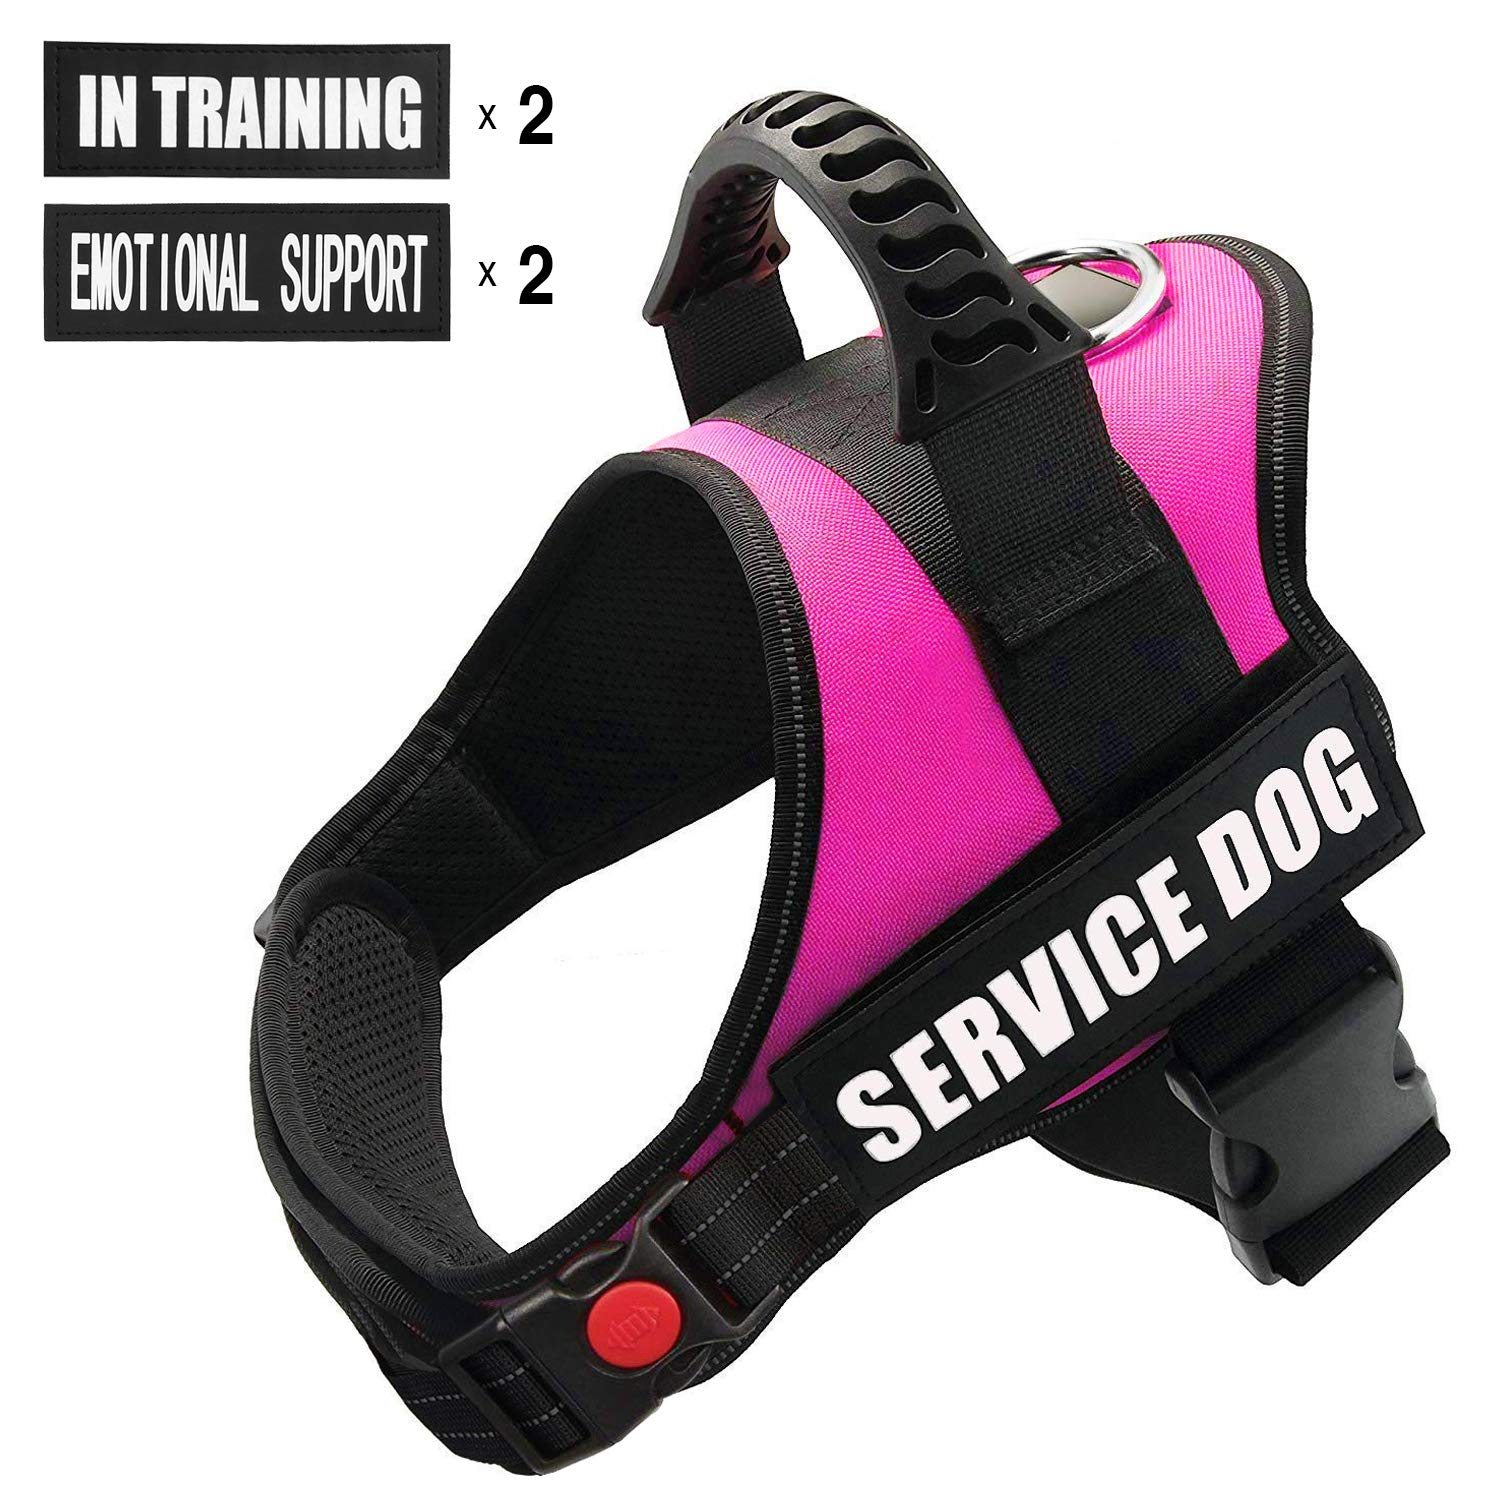 FAYOGOO Dog Vest Harness for Service Dogs, Comfortable Padded Dog Training Vest with Reflective Patches and Handle for Large Medium Small Dogs (Medium: Chest 24-32'' Neck 20-26'', Pink) by FAYOGOO